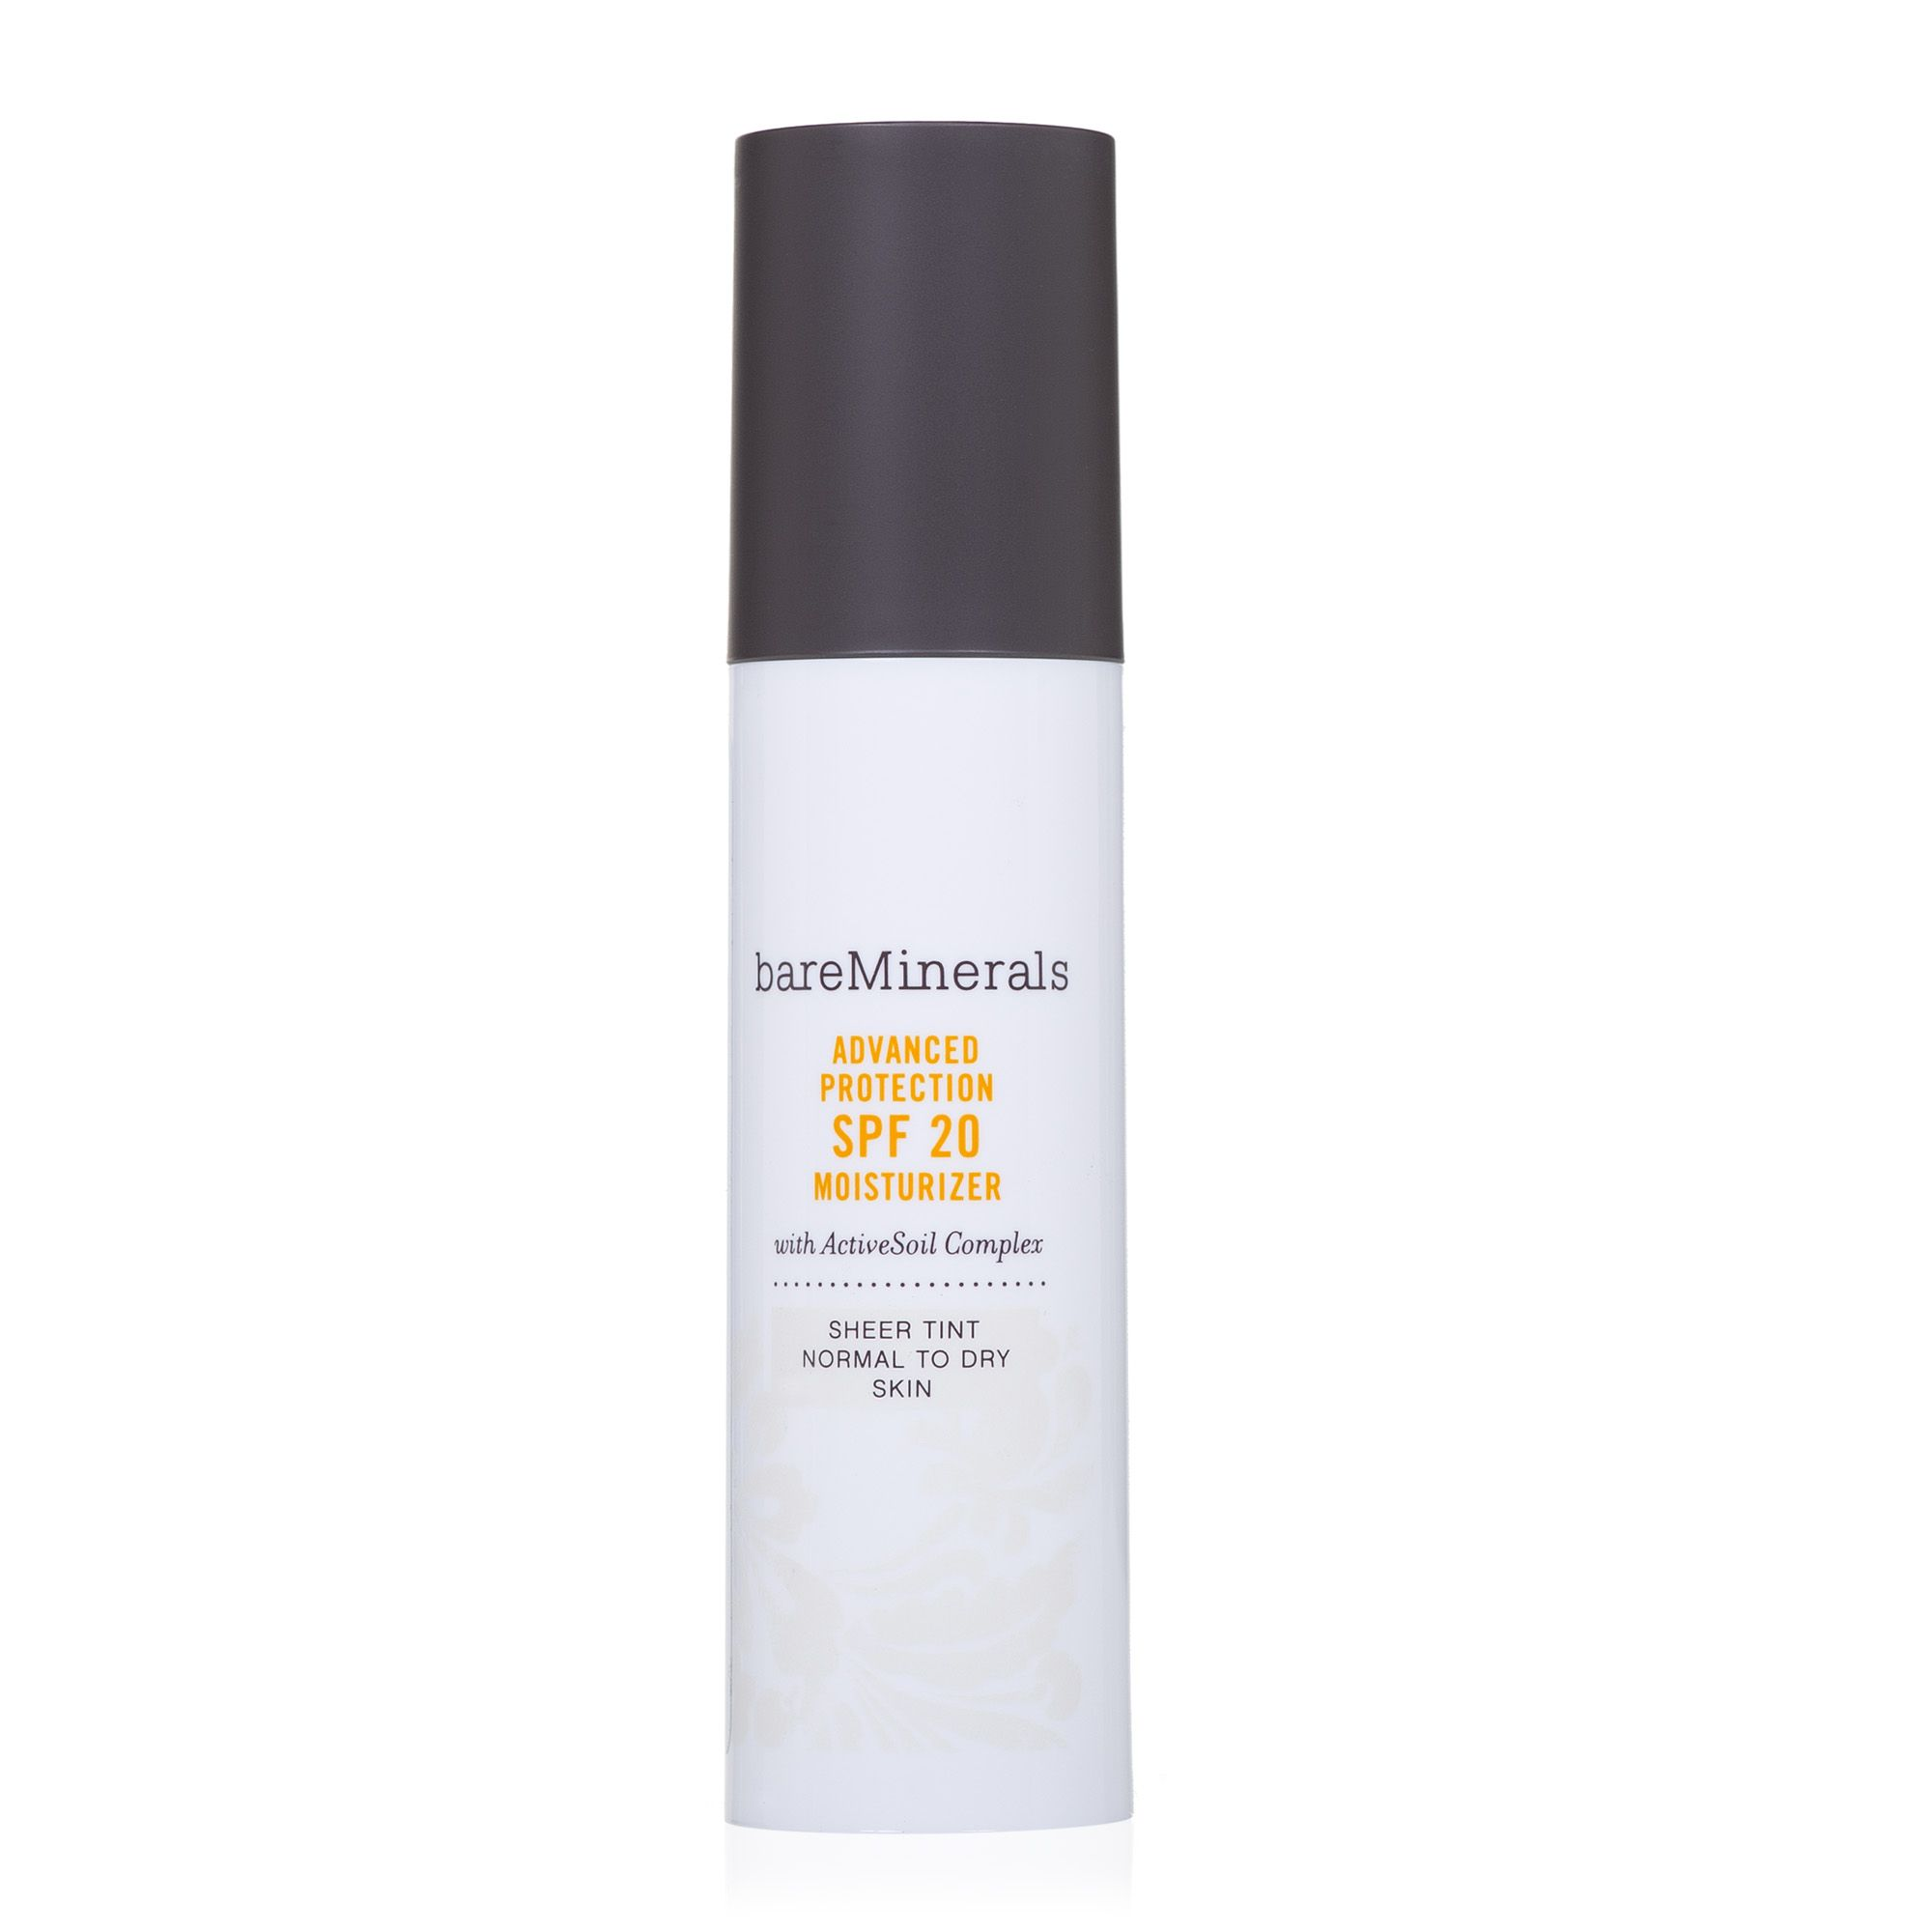 bareMinerals Advanced Protection crema idratante colorata vellutata con SPF 20